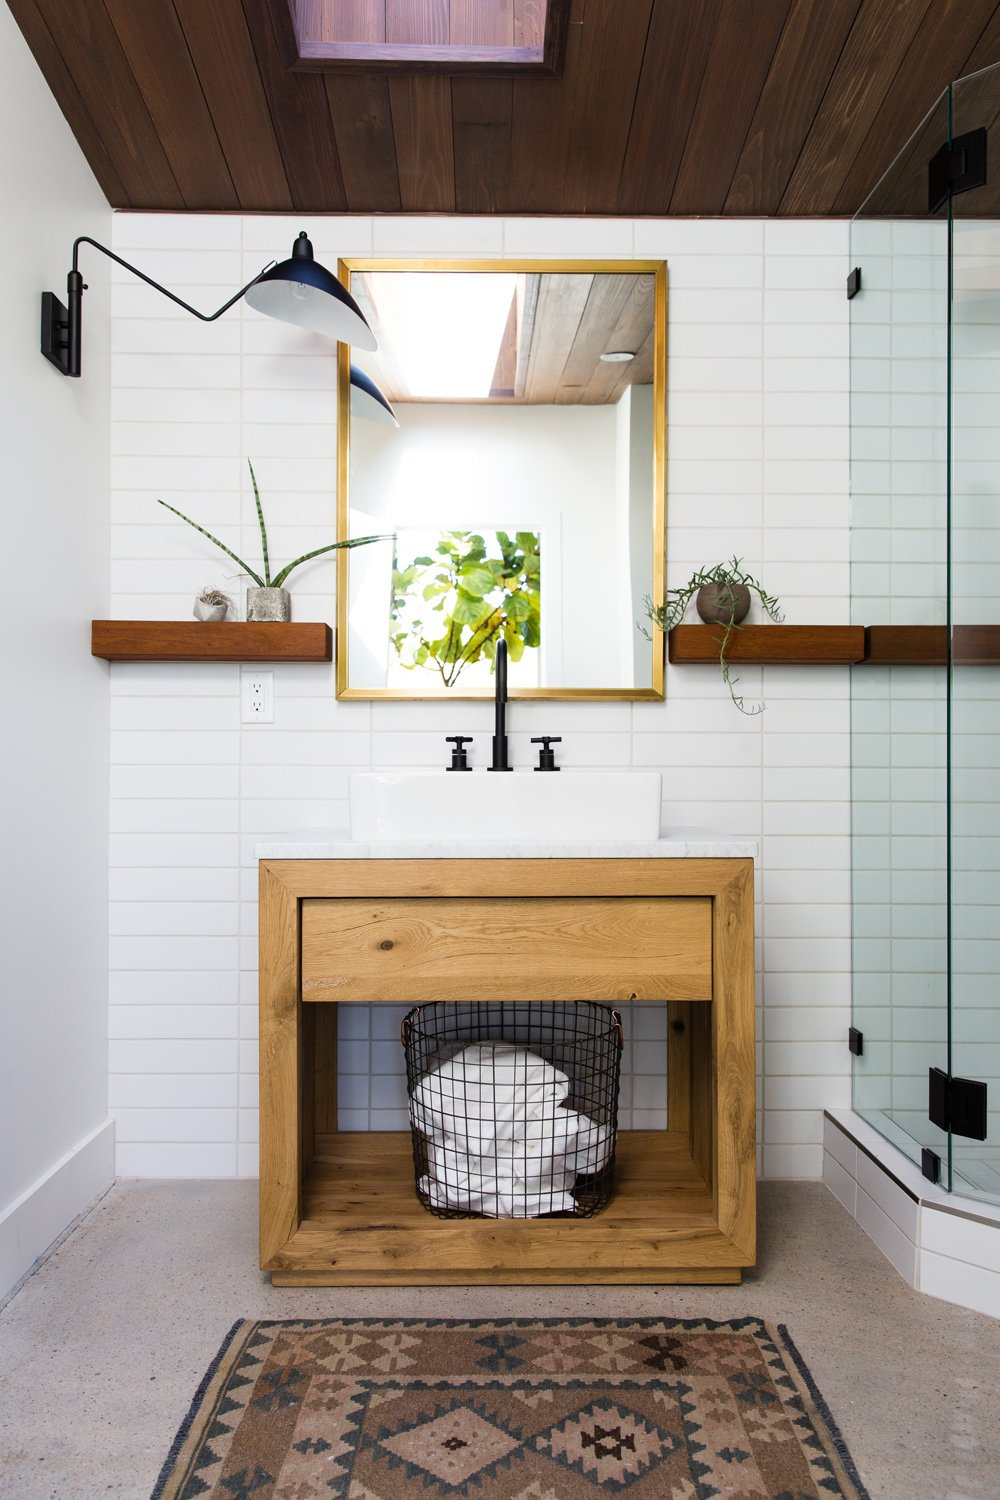 Bath Room, Vessel Sink, Wall Lighting, Rug Floor, Corner Shower, Marble Counter, and Concrete Floor Custom woodwork adds helpful shelving in the bathroom, while a long skylight draws in natural light.  Modern Mountain Pool House by Melissa Kelsey